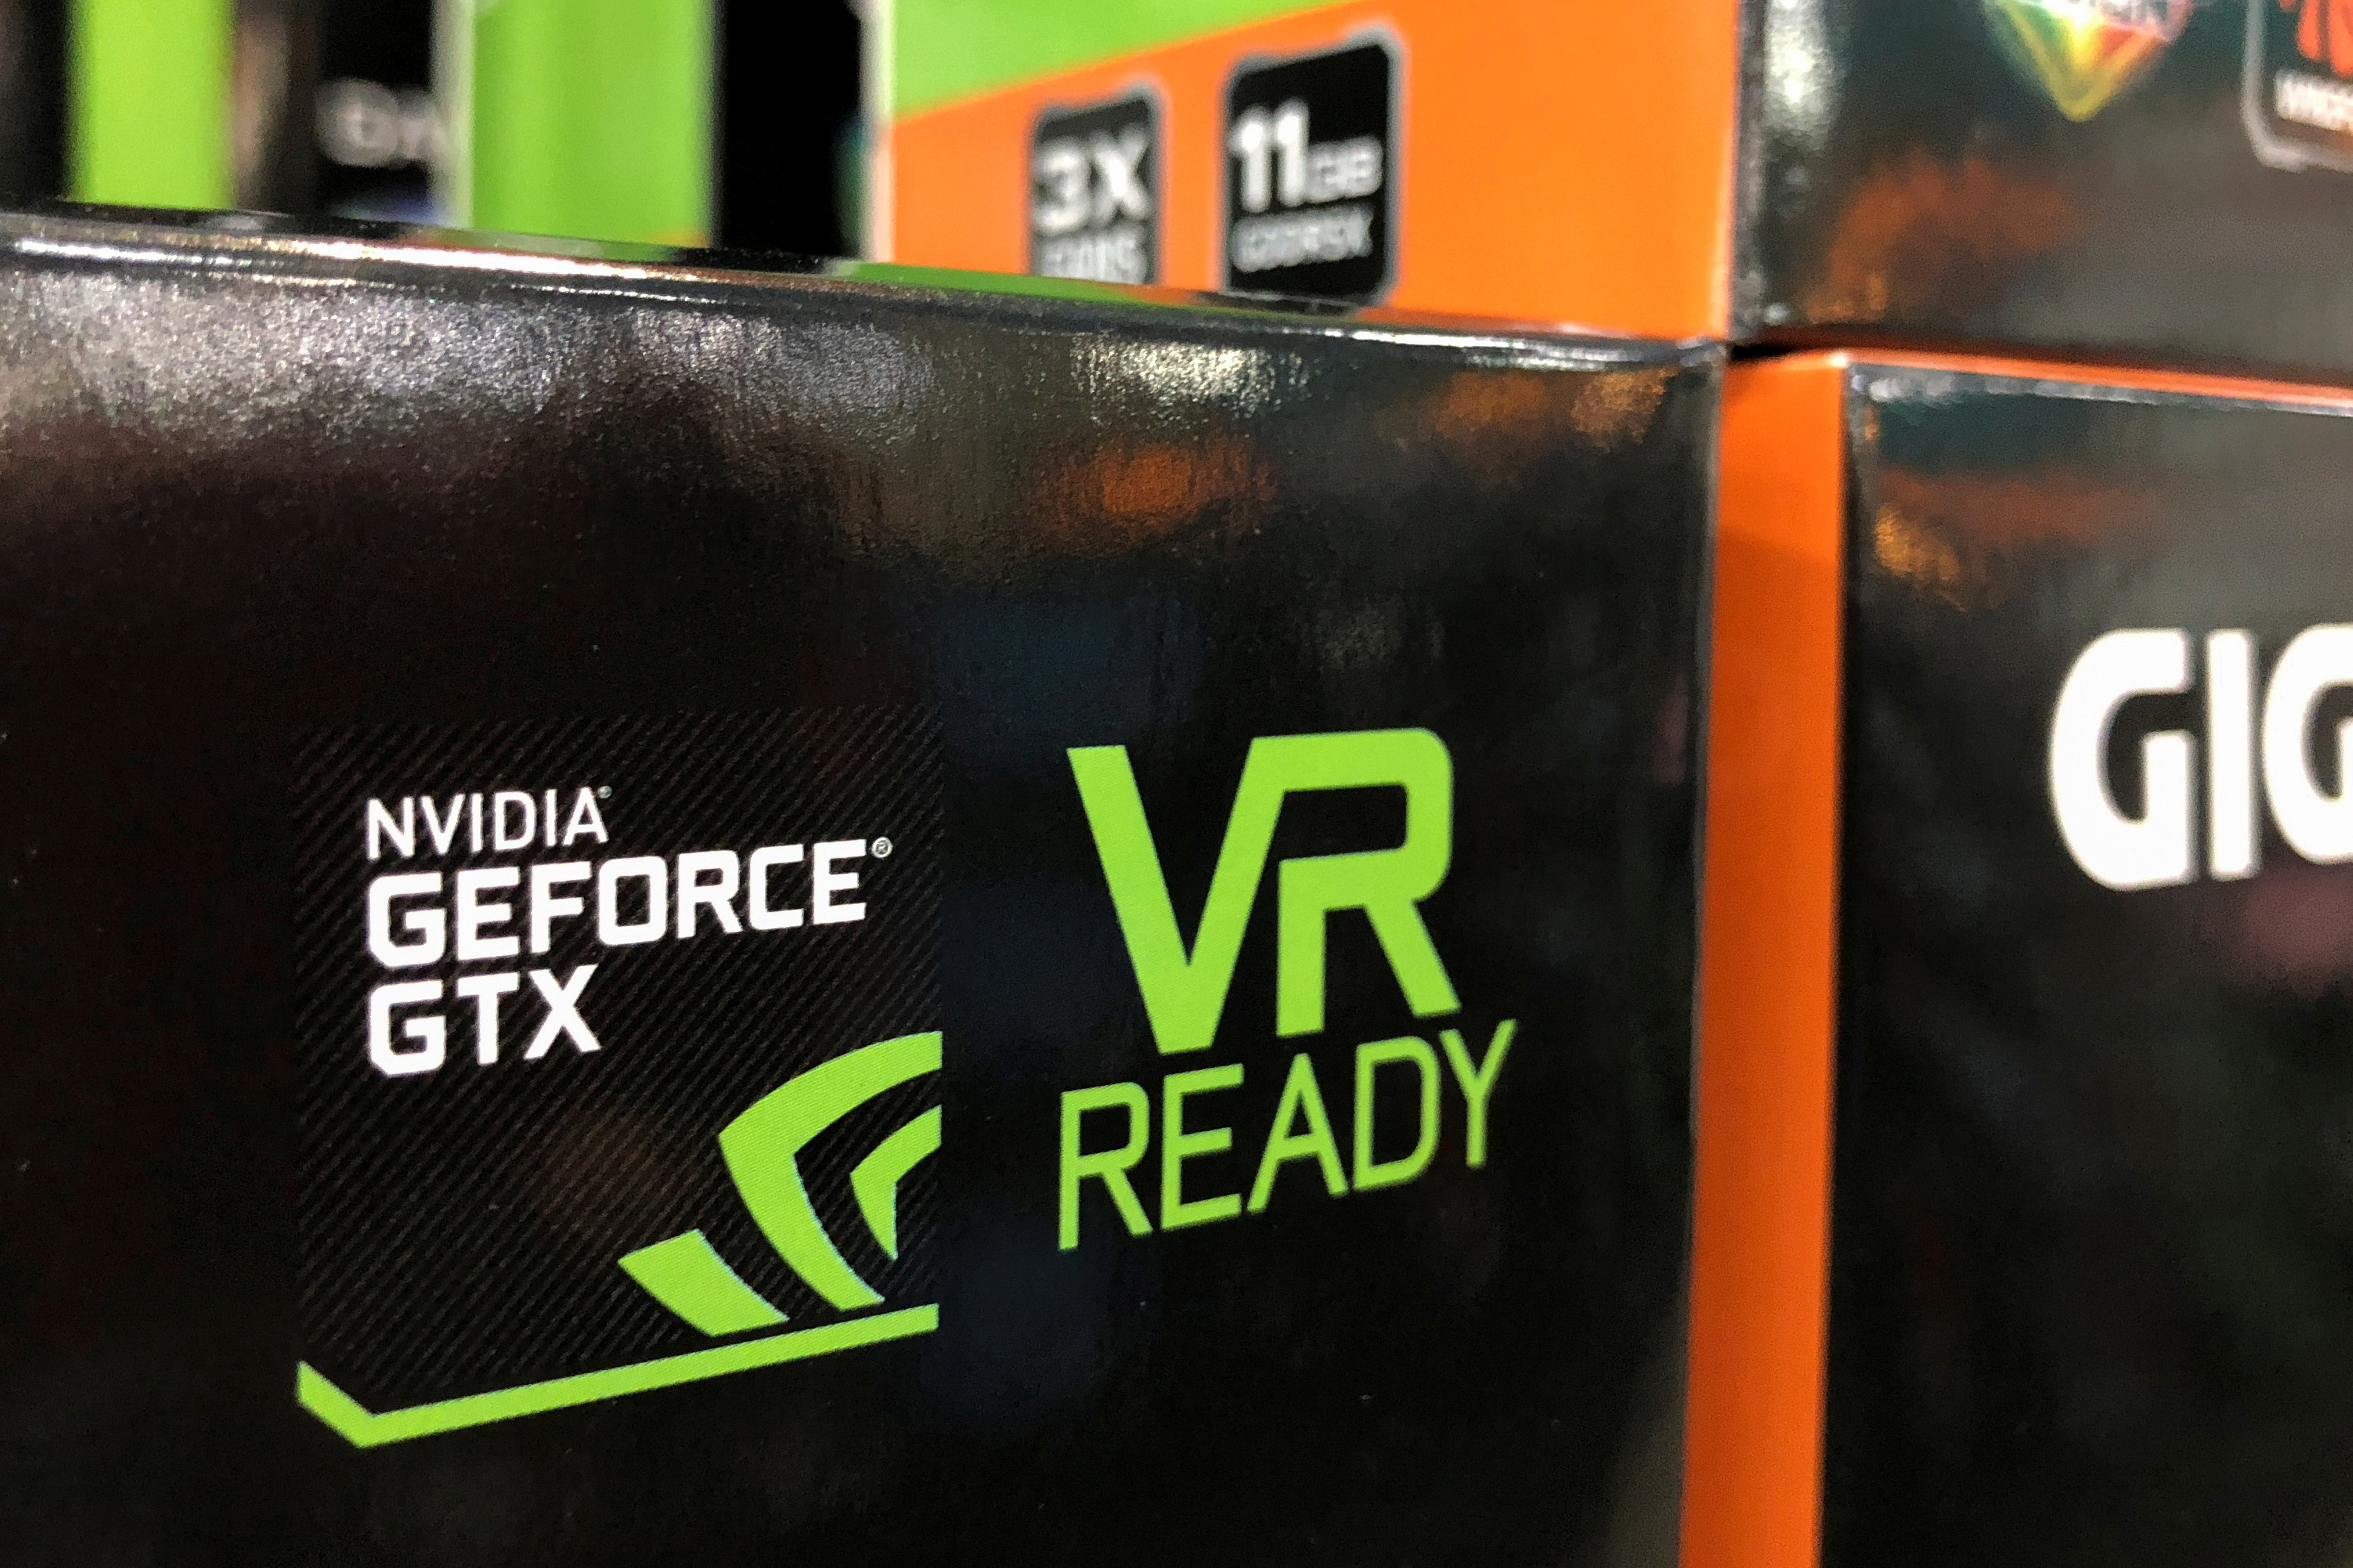 NVIDIA computer graphic cards are shown for sale at a retail store in San Marcos, California, U.S. August 14, 2018. REUTERS/Mike Blake/File Photo